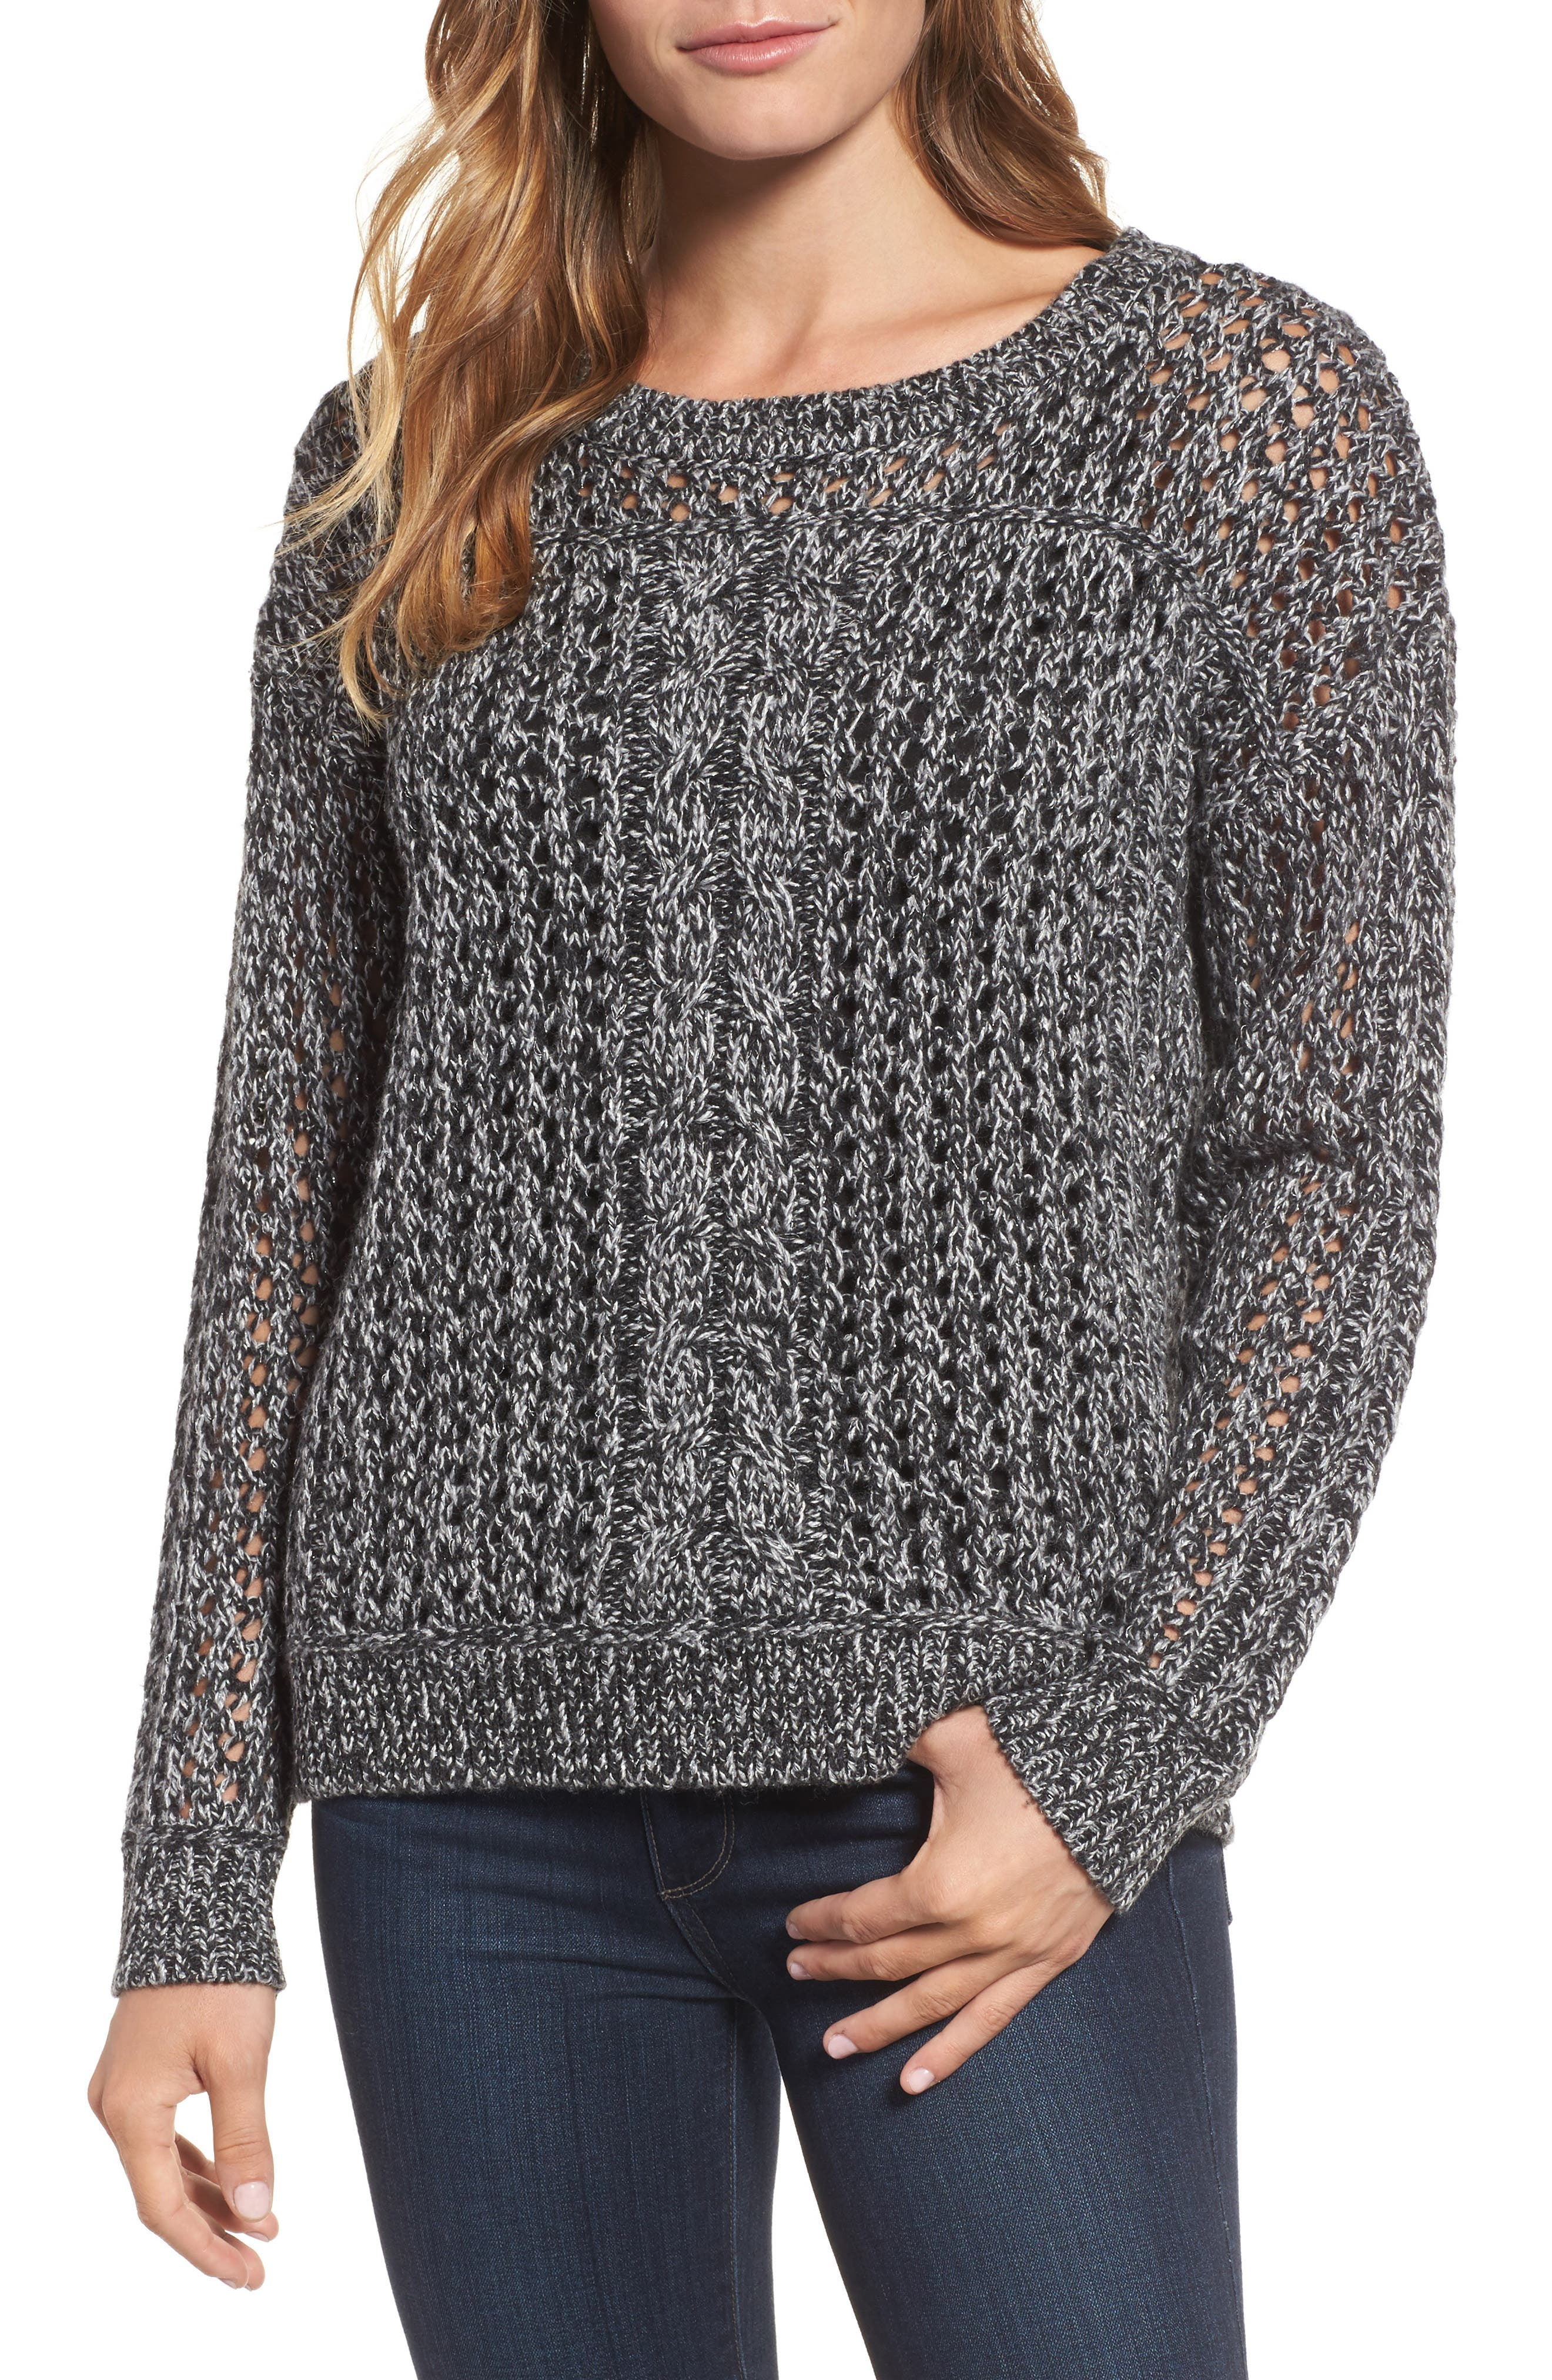 Cascade Cable Sparkle Crew Sweater,                             Main thumbnail 1, color,                             Charcoal Heather